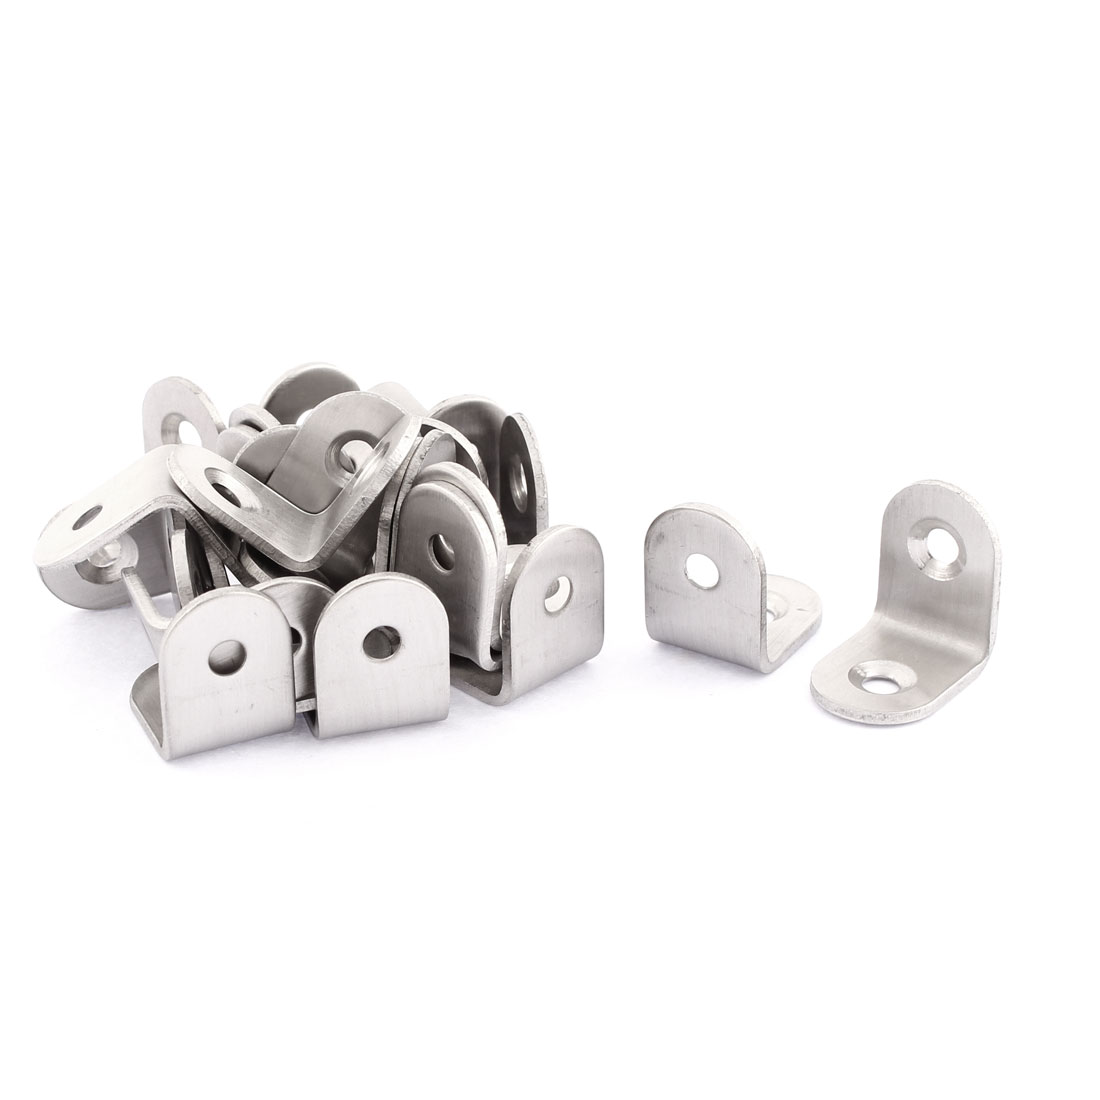 Stainless Steel 90 Degree Angle Bracket 20 x 20mm 25PCS